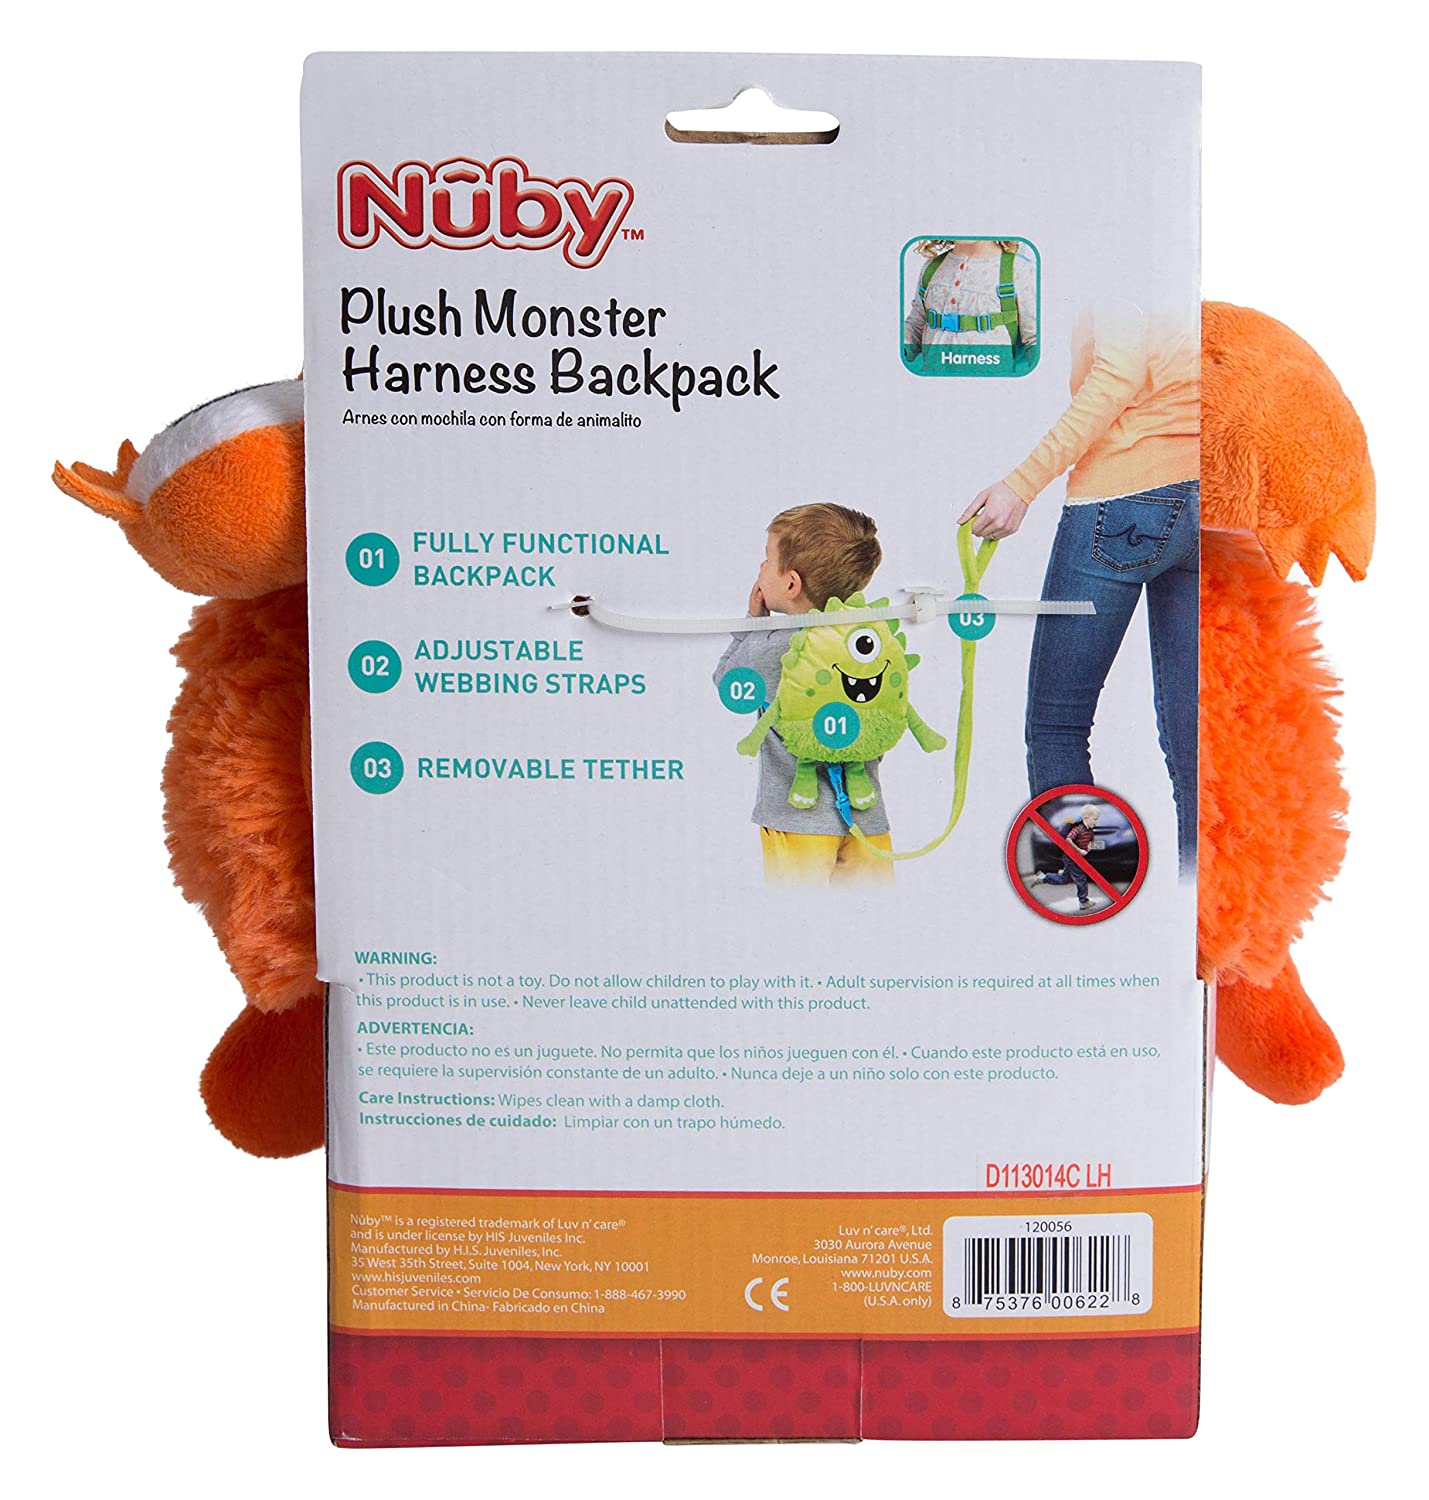 Amazon.com : Nuby Plush Baby Backpack with Safety Harness, Orange Monster : Baby